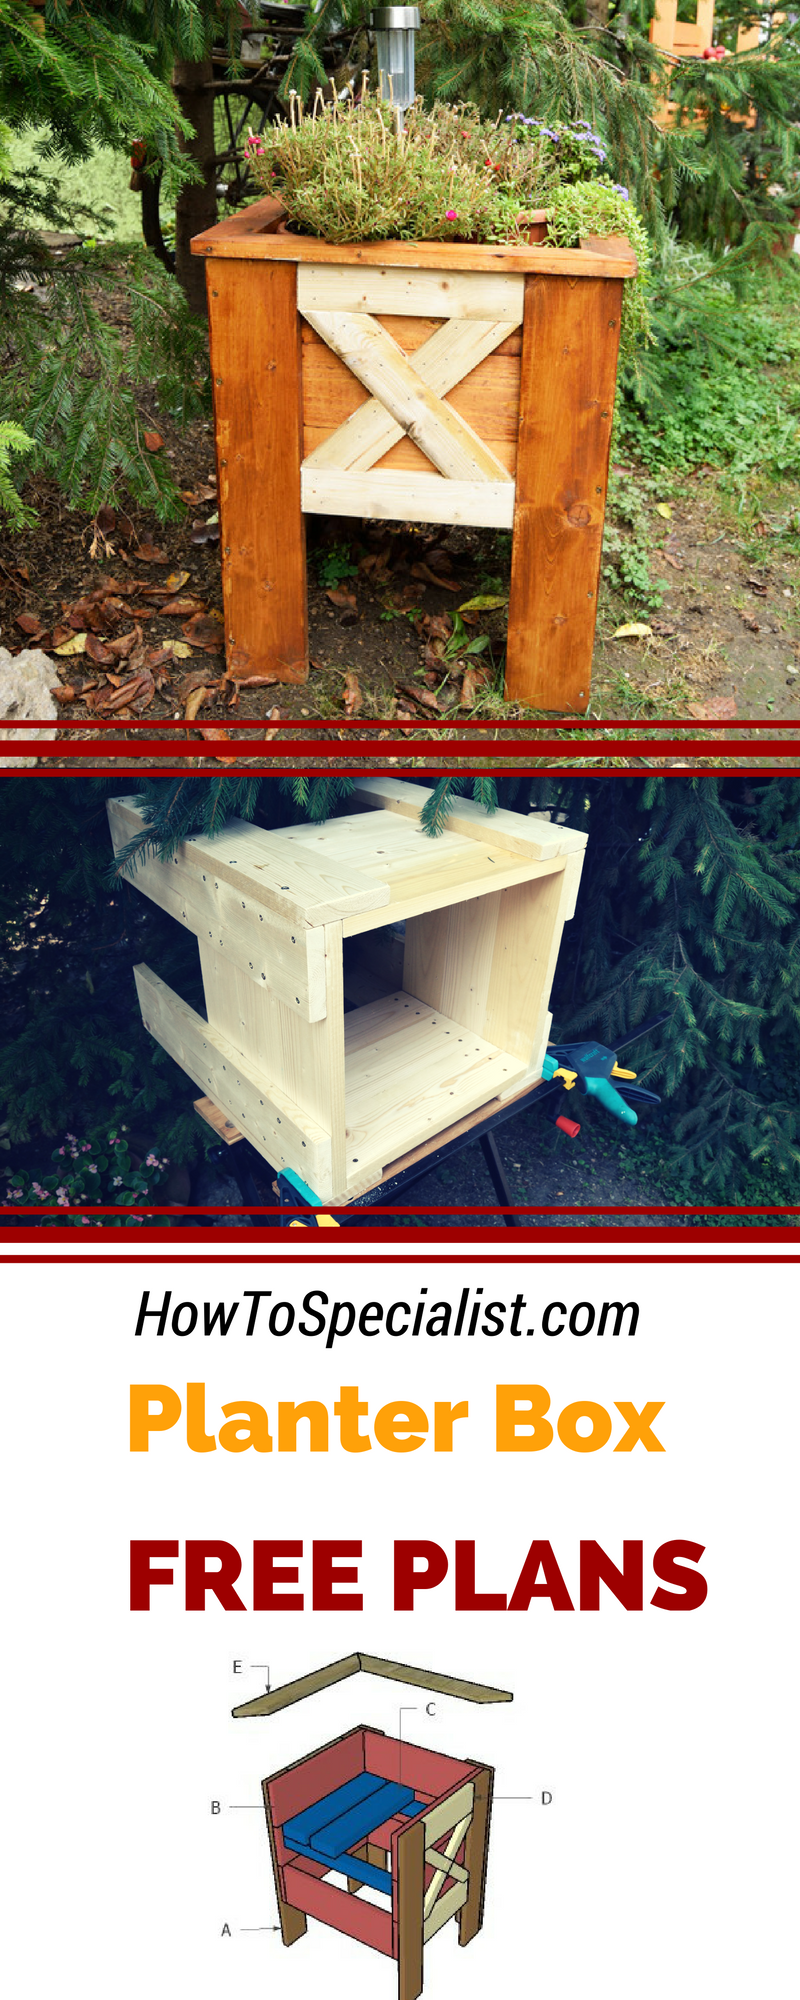 medium resolution of easy to follow free plans for you to learn how to build an outdoor wood planter box build this decorative planter box under 40 using my step by step plans